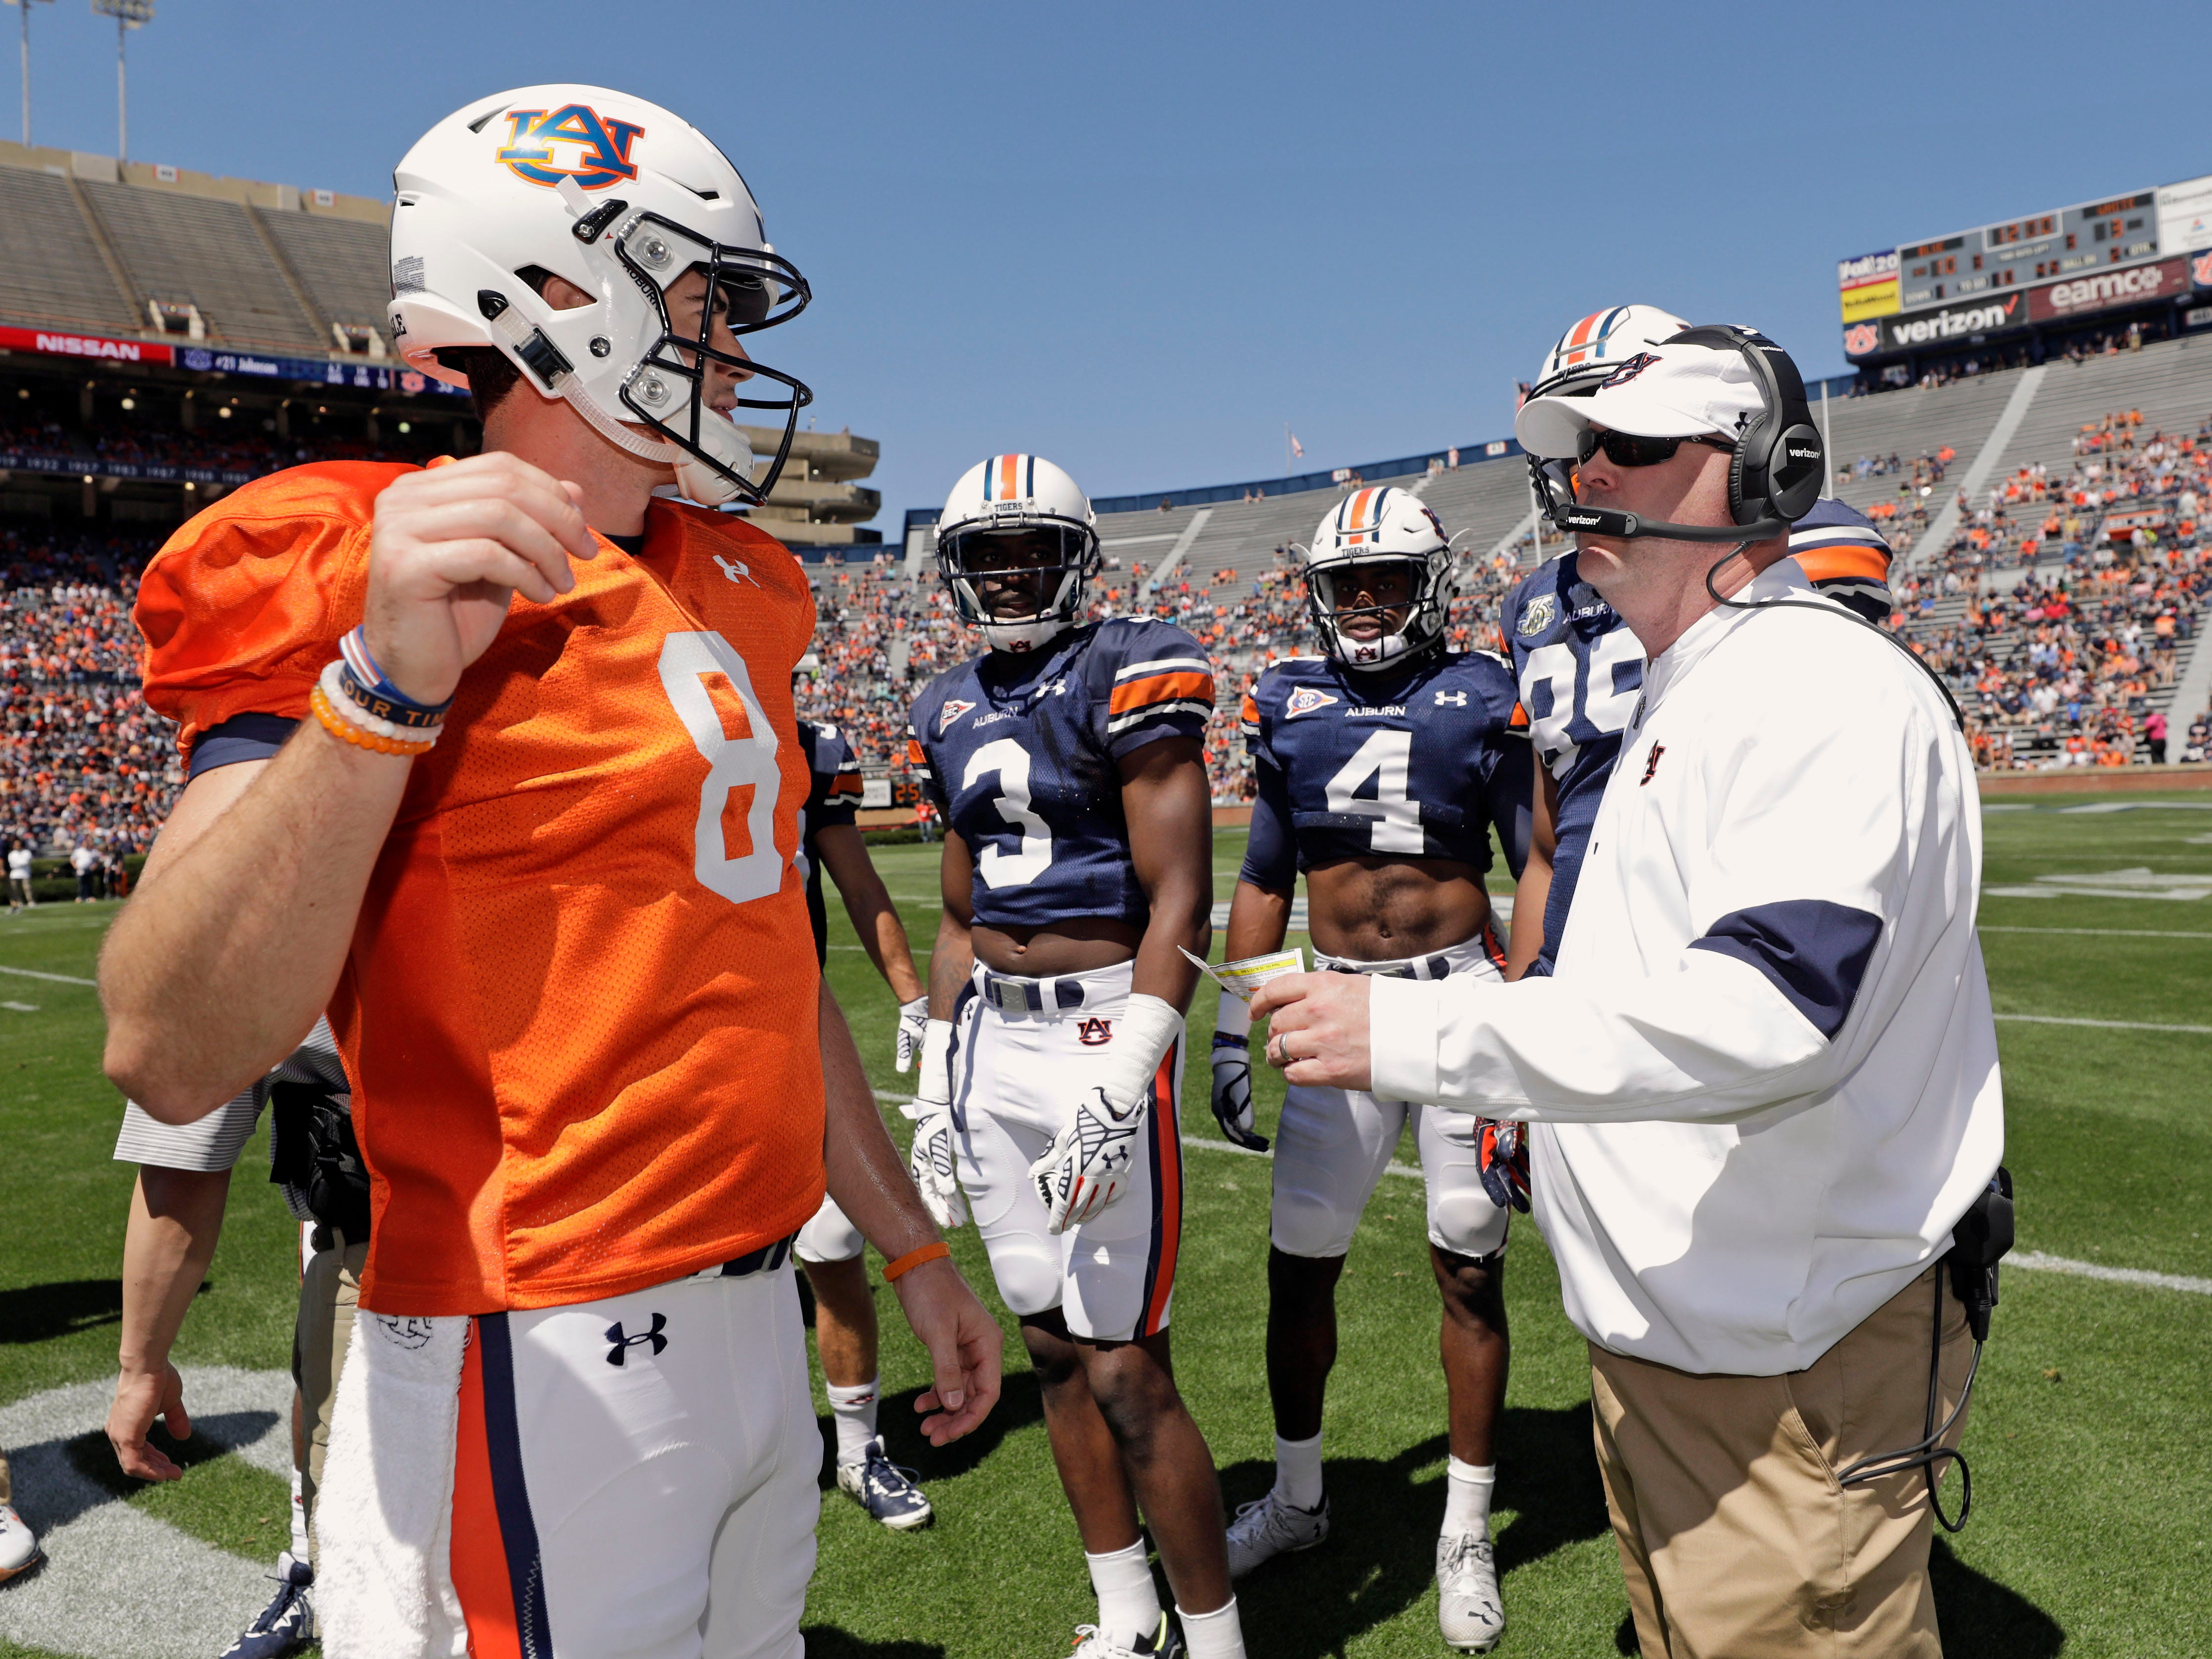 No. 16: Chip Lindsey, Auburn offensive coordinator: $1,100,500. In 2010, Lindsey made less than $80,000 as an assistant at Troy. By 2016, he was making $650,000 Arizona State. He moved on to Auburn in 2017, initially had success but then ran into problems. Next season, he will be on Les Miles' new staff at Kansas.